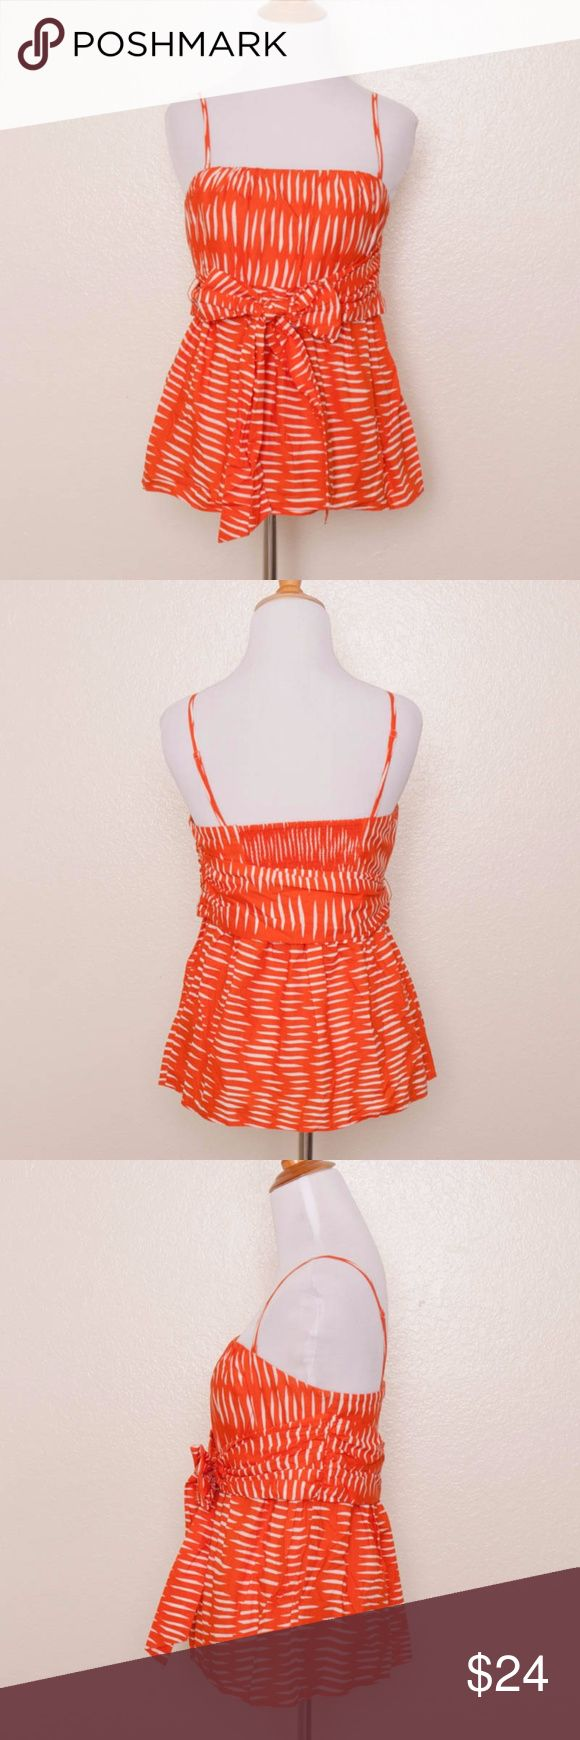 "We Love Vera Salitre Top ""Salitre Top"" Orange and white print, strapless blouse with waist tie Includes removable spaghetti straps Silicone non-slip band Smocked, elasticized inset at back 100% Cotton Machine wash Made in China  Measurements: Bust: 30"" (unstretched) Waist: 28"" Overall Length (from top of bodice to hem): 18""  Condition: Top is clean and shows minimal wear; no holes, stains, pulls, or pilling. Anthropologie Tops"